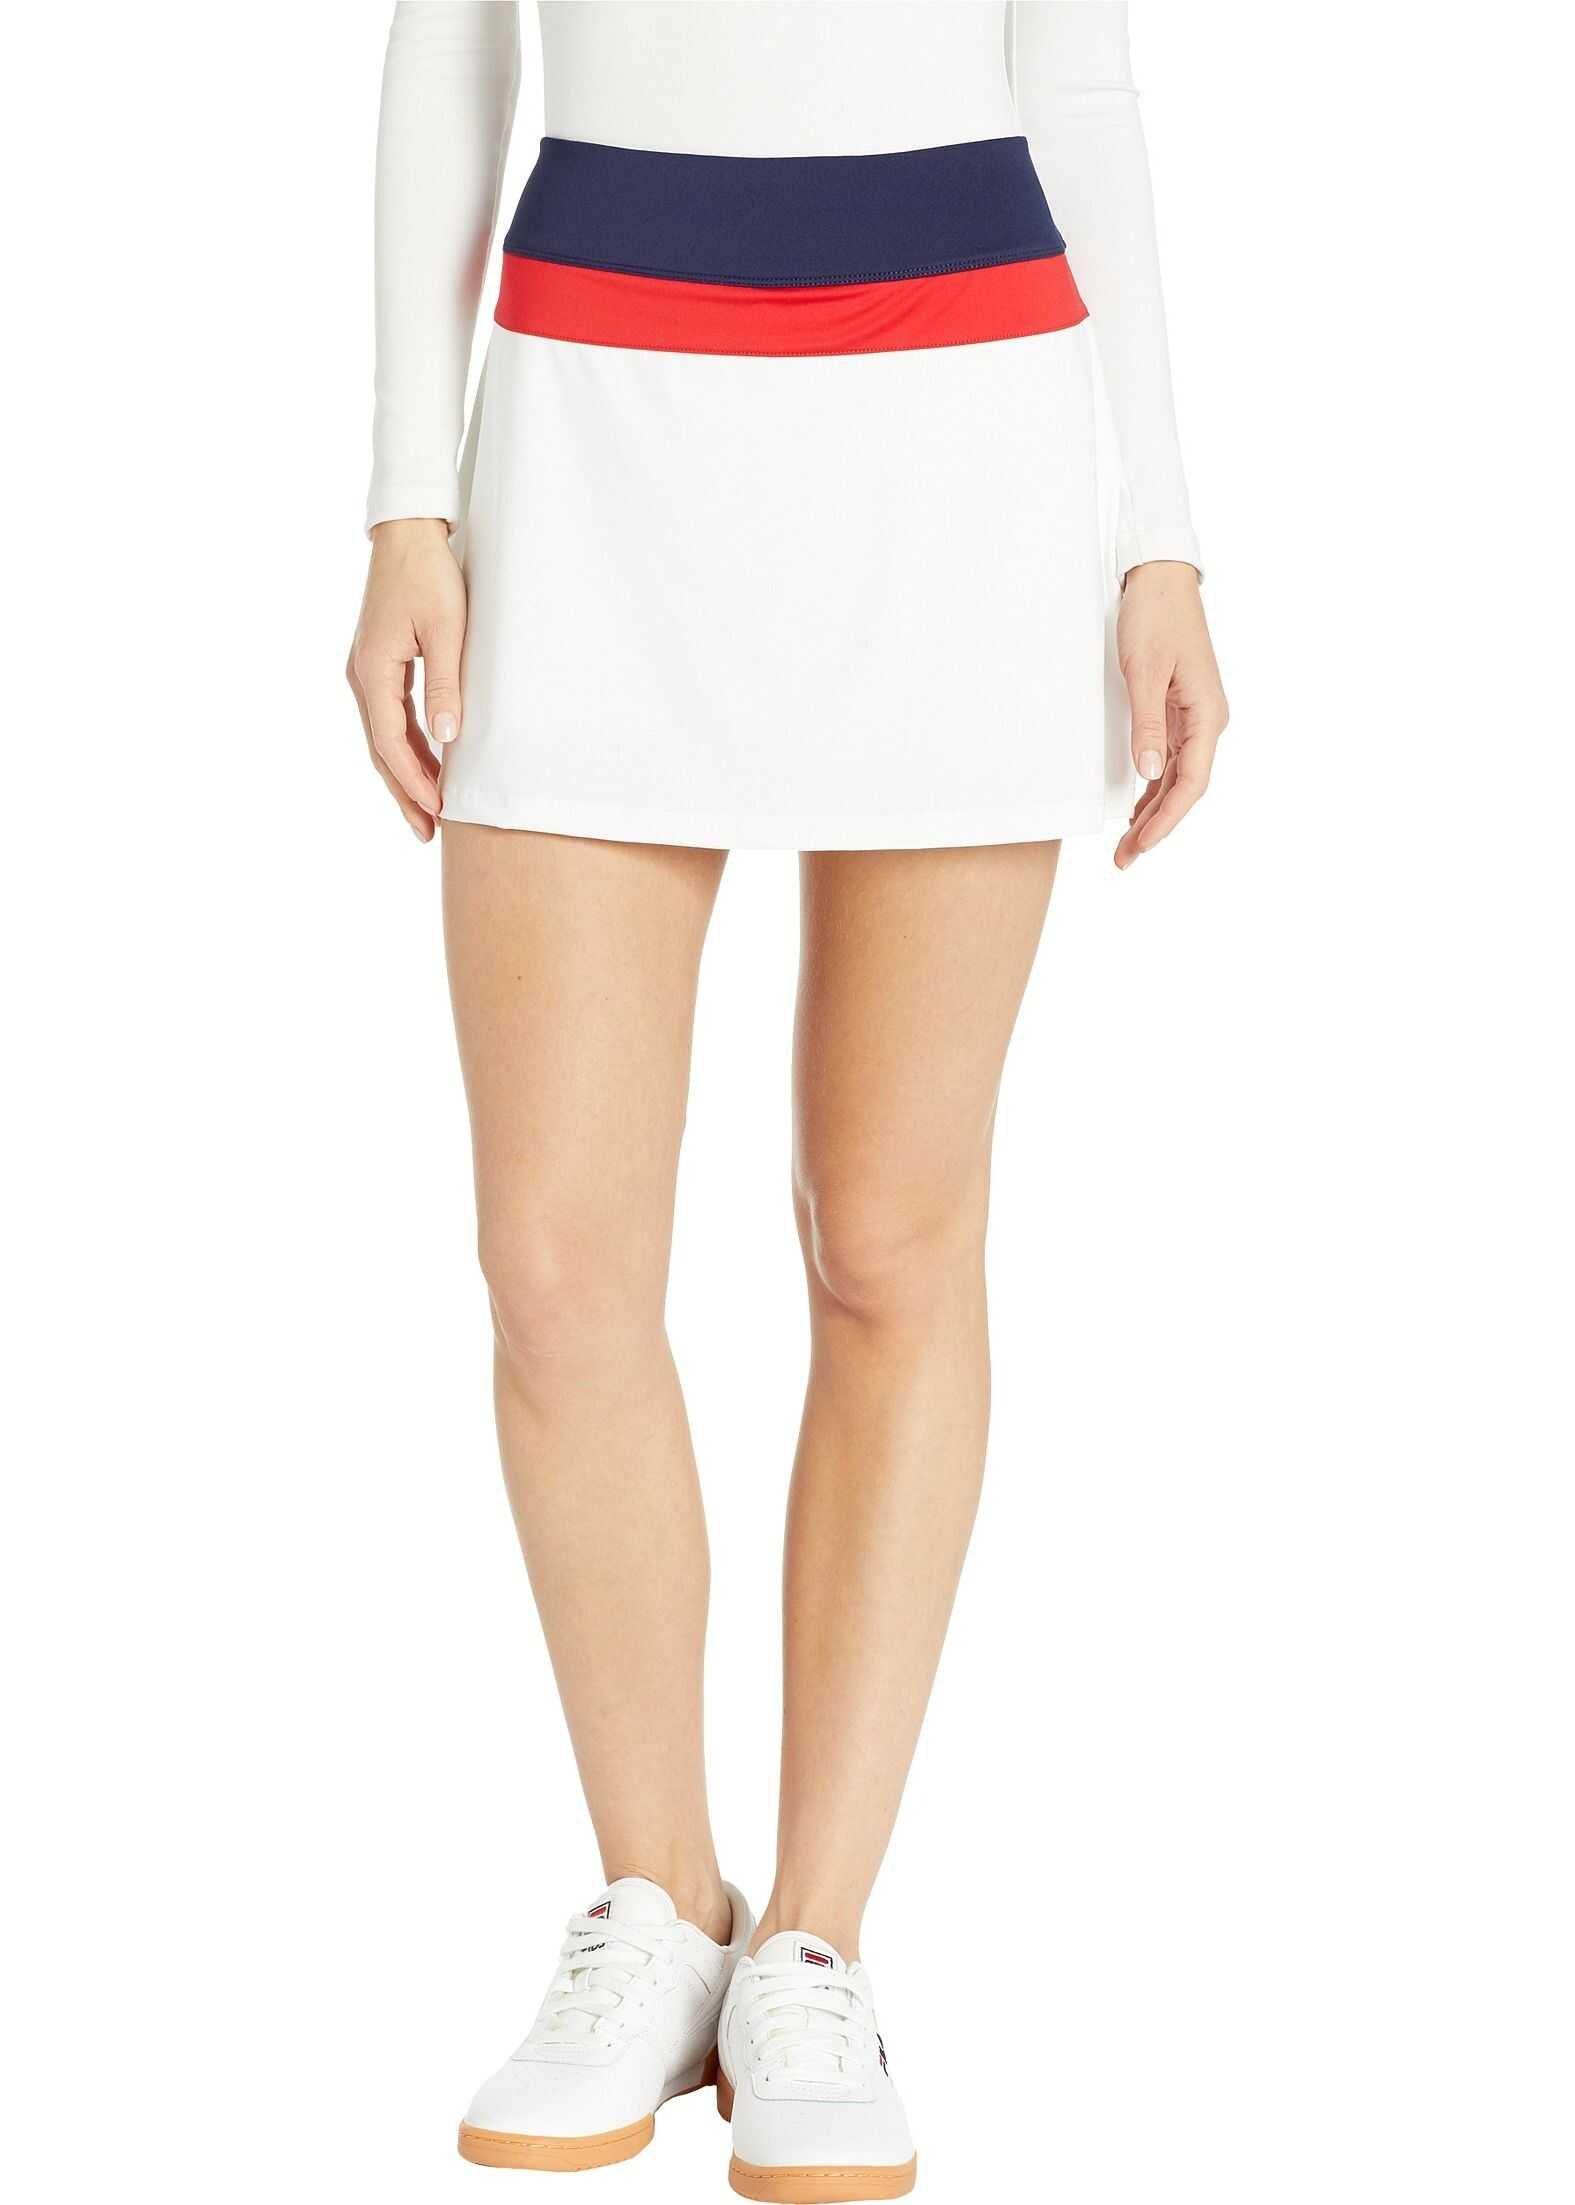 Fila Heritage Color Block Skort White/Navy/Chinese Red